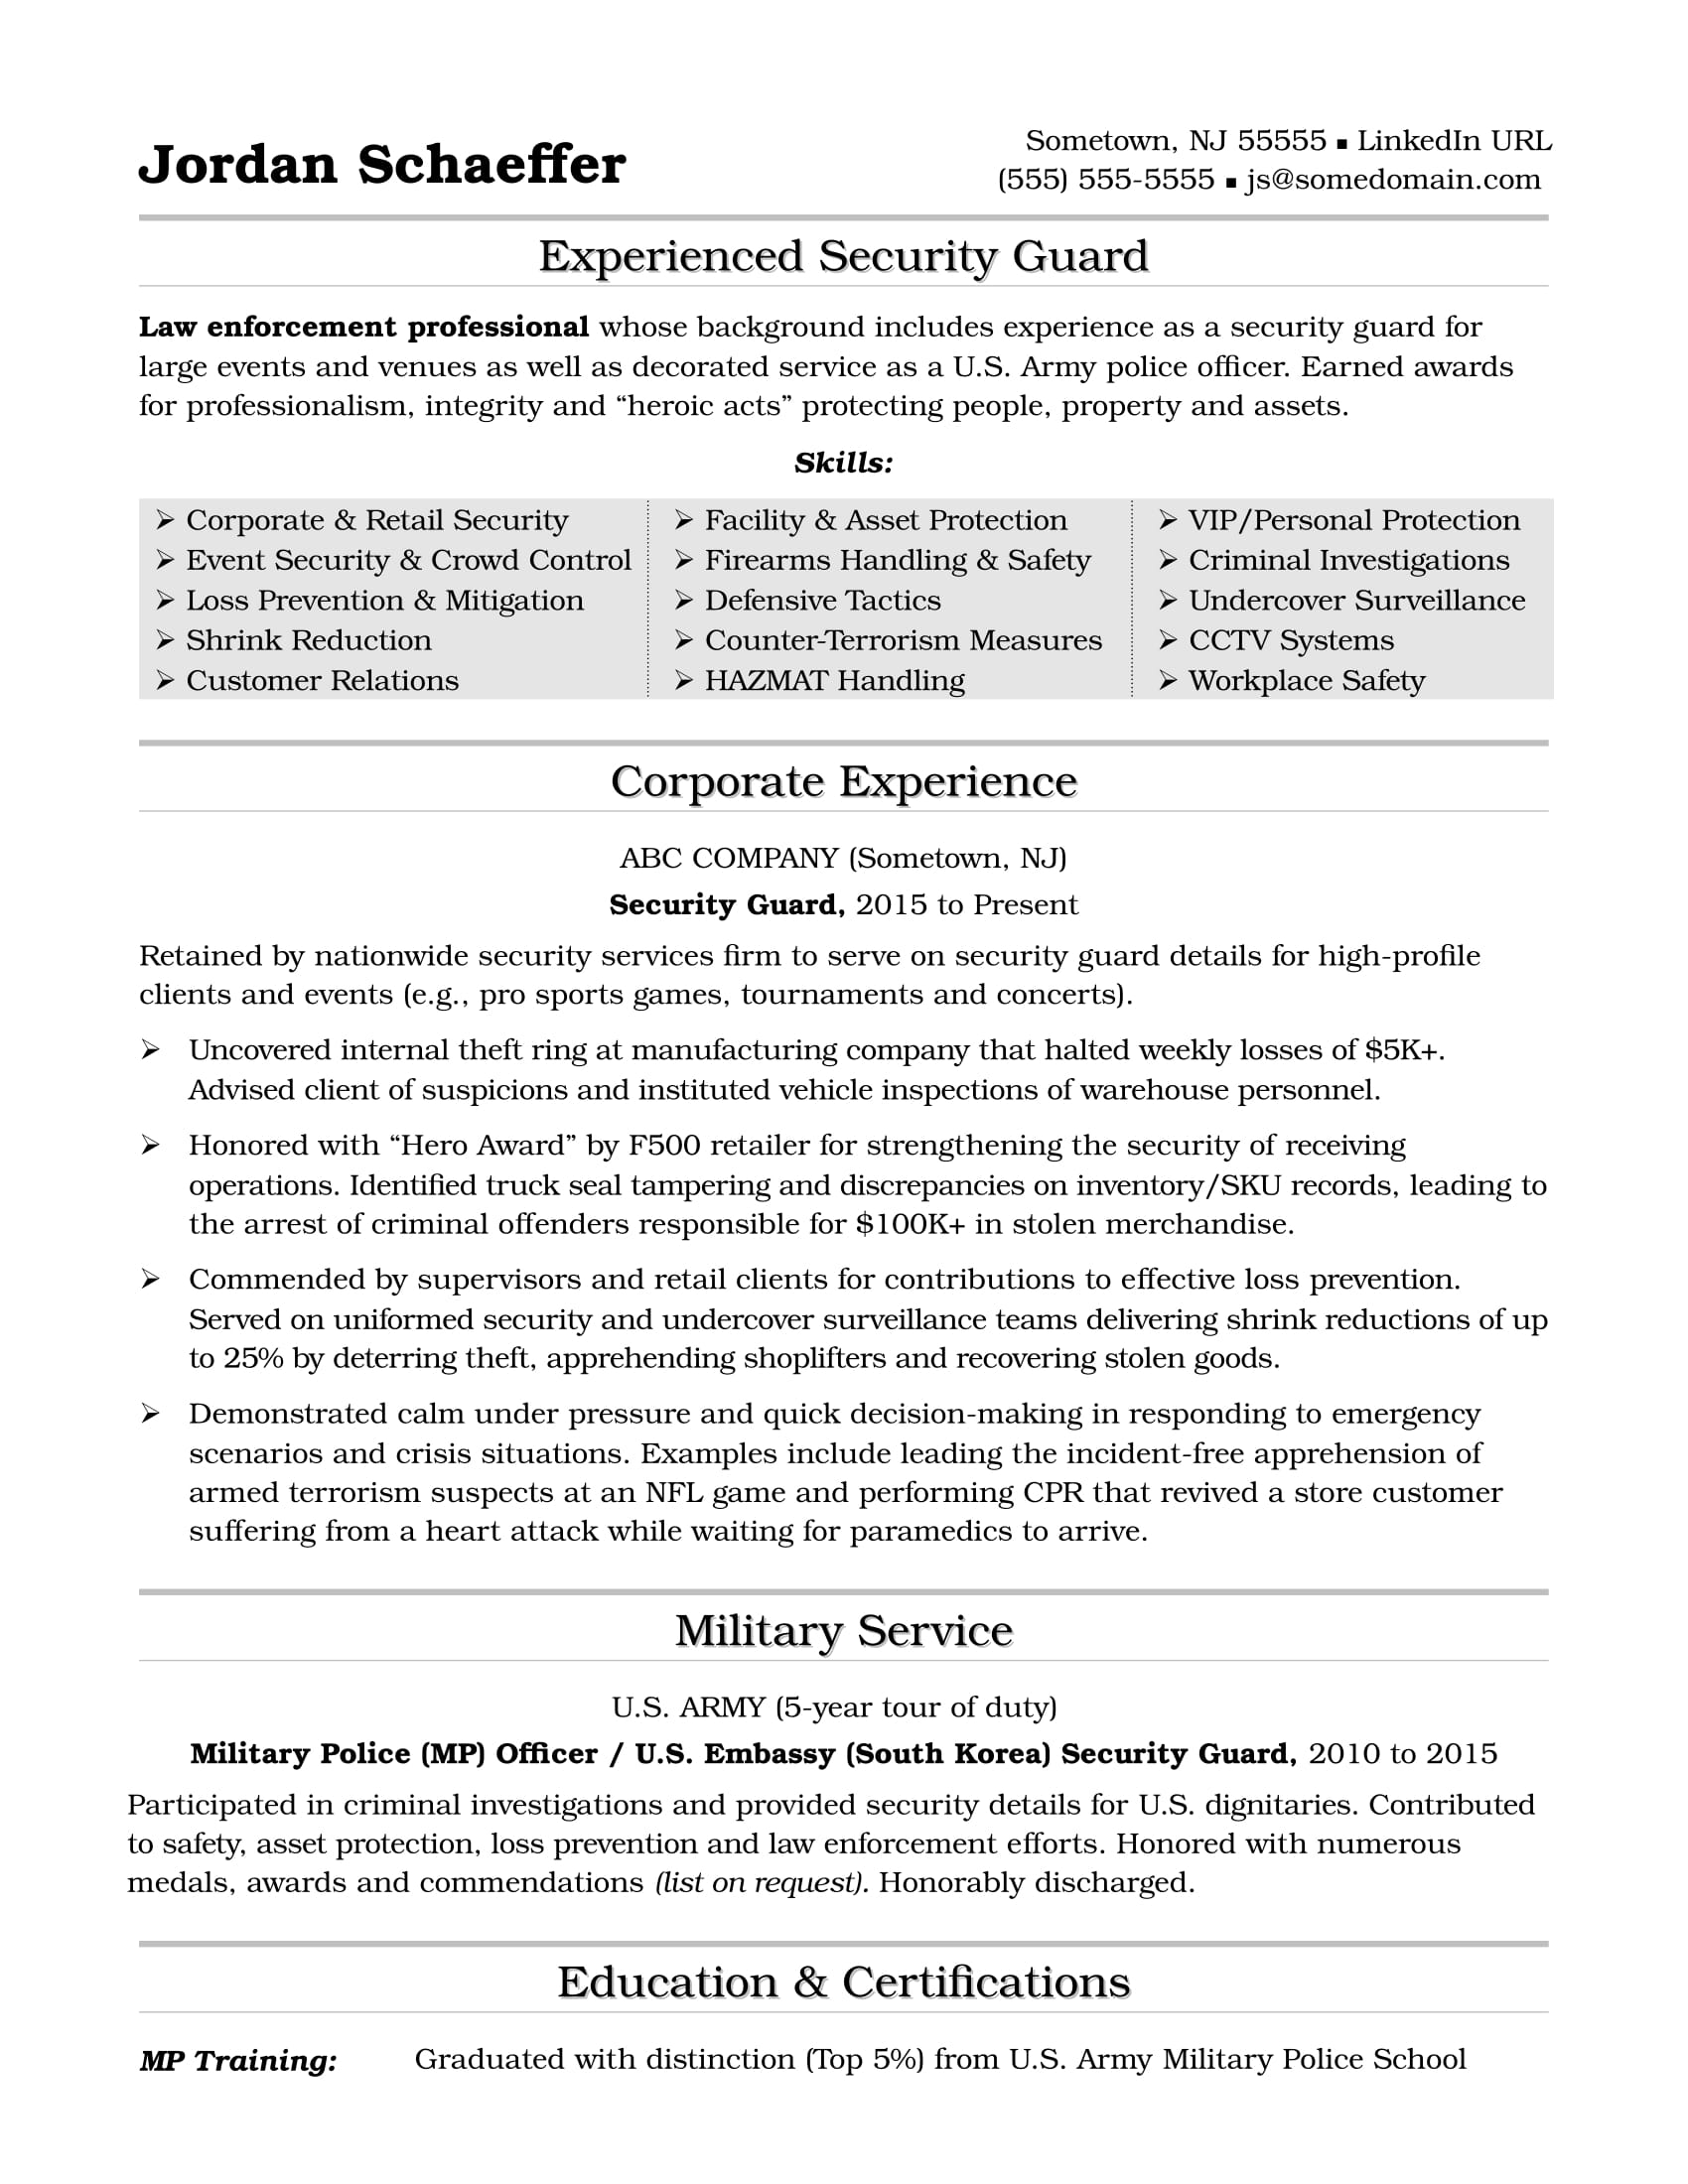 Exceptional Security Guard Resume Sample